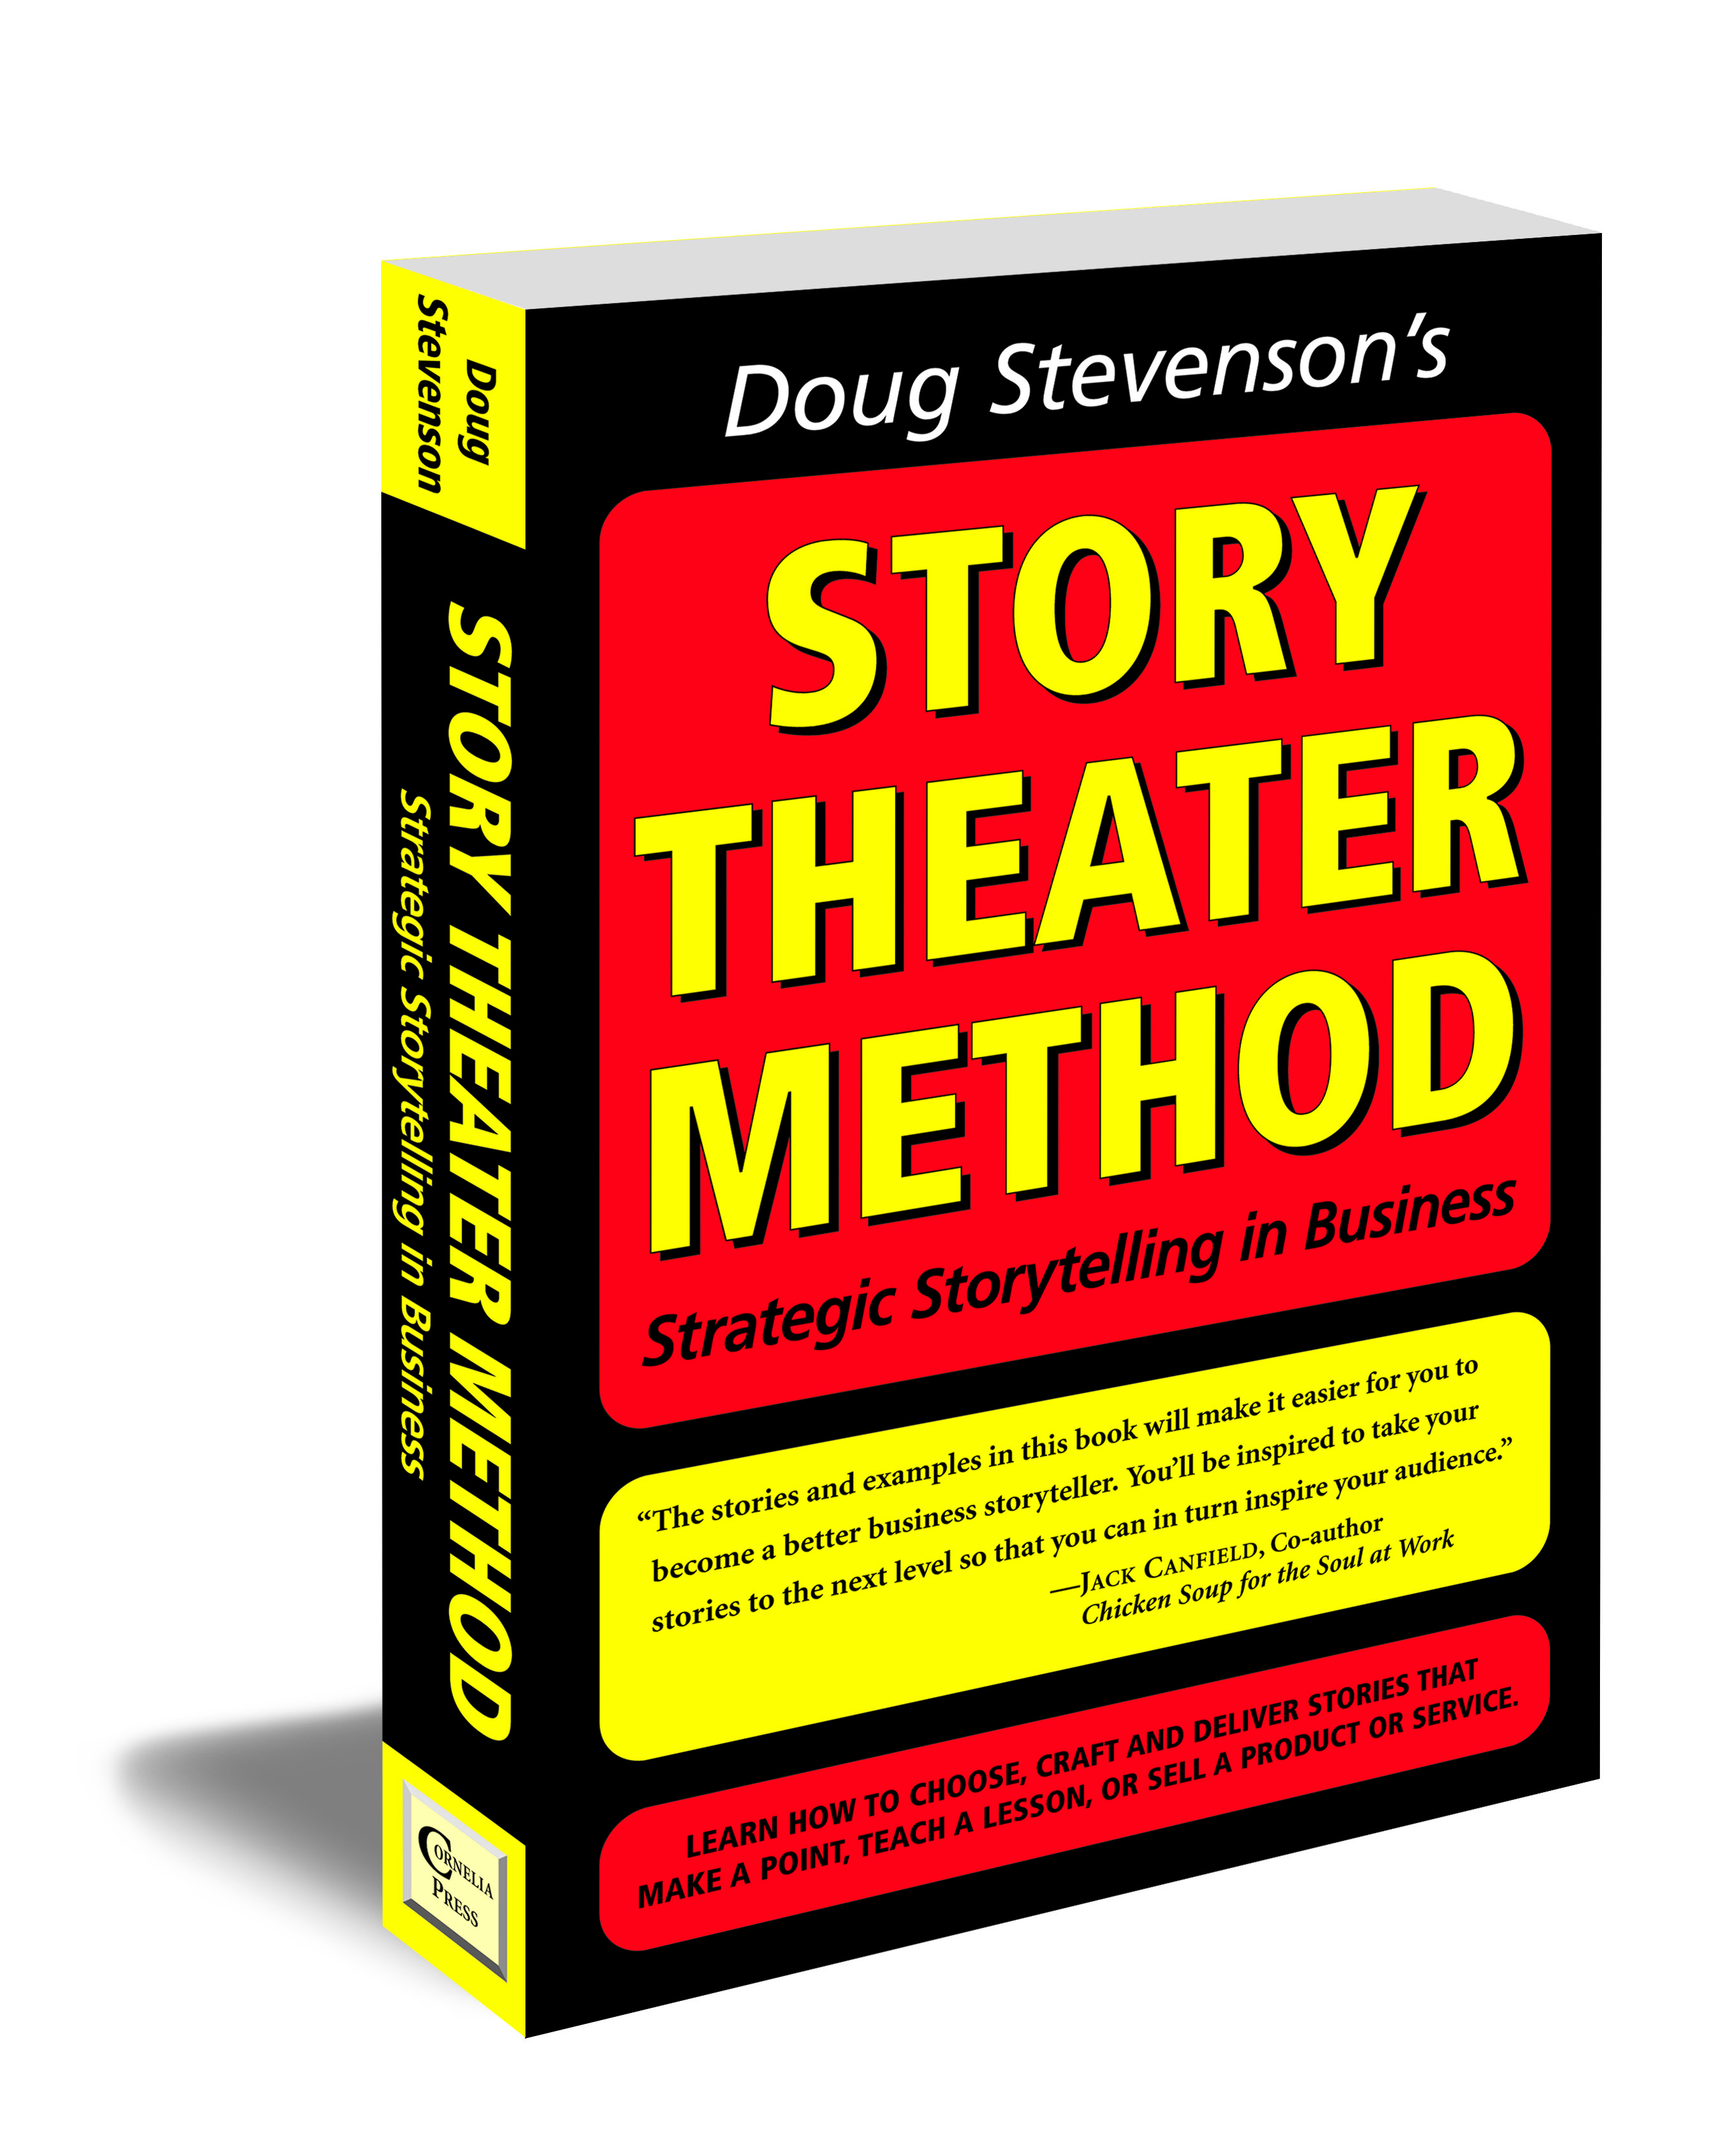 The Story Theater Method book cover